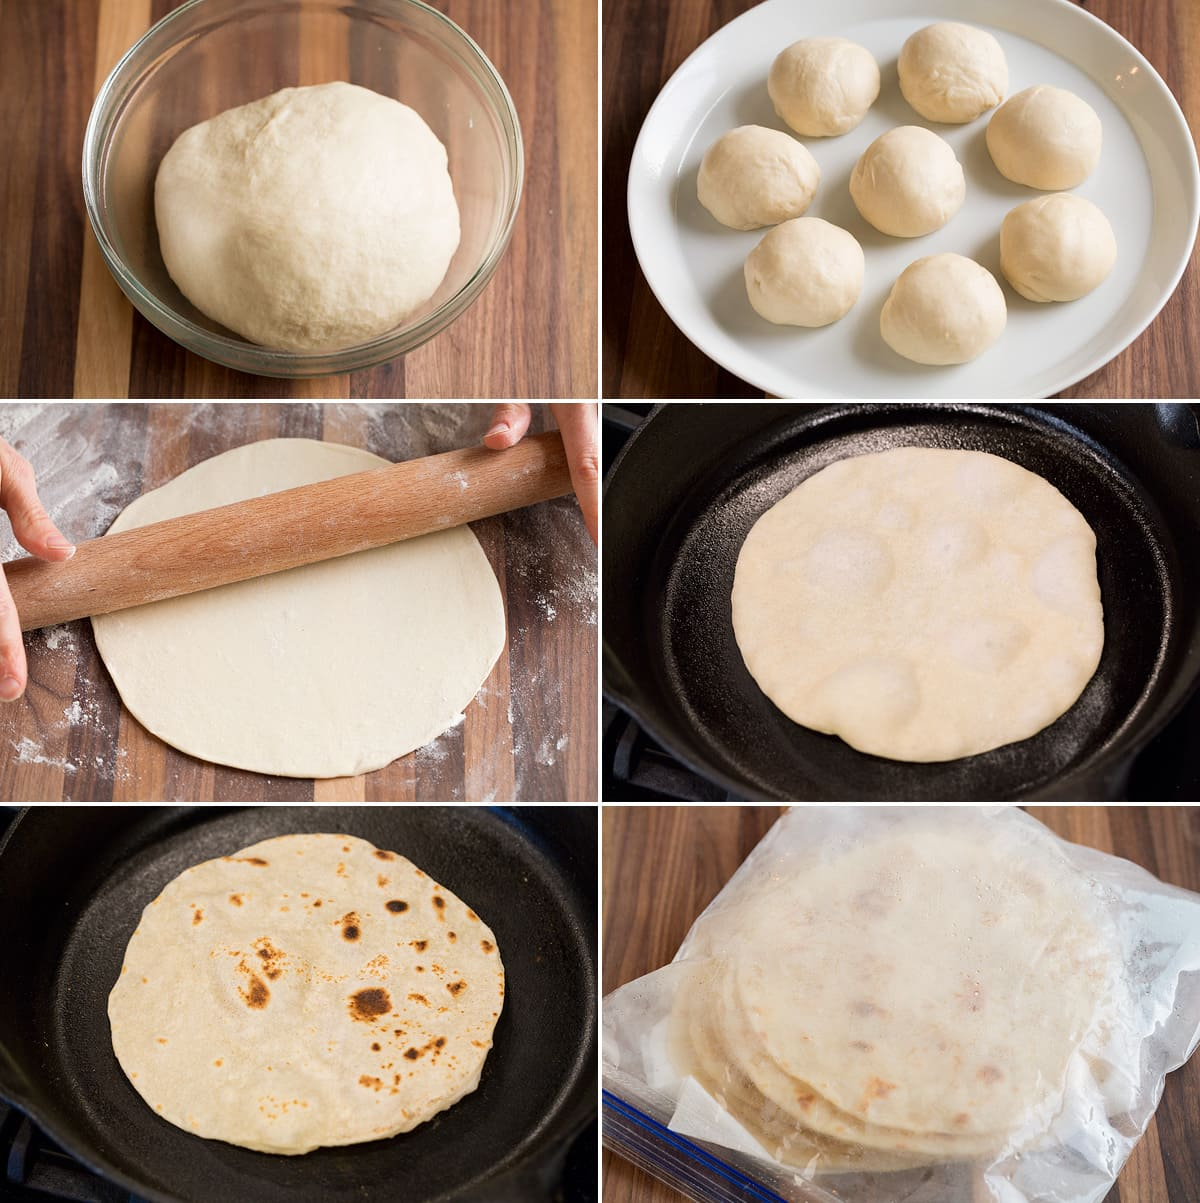 Image showing steps how to shape tortilla dough in different stages, how to cook tortillas and how to steam tortillas after cooking in a resealable bag.